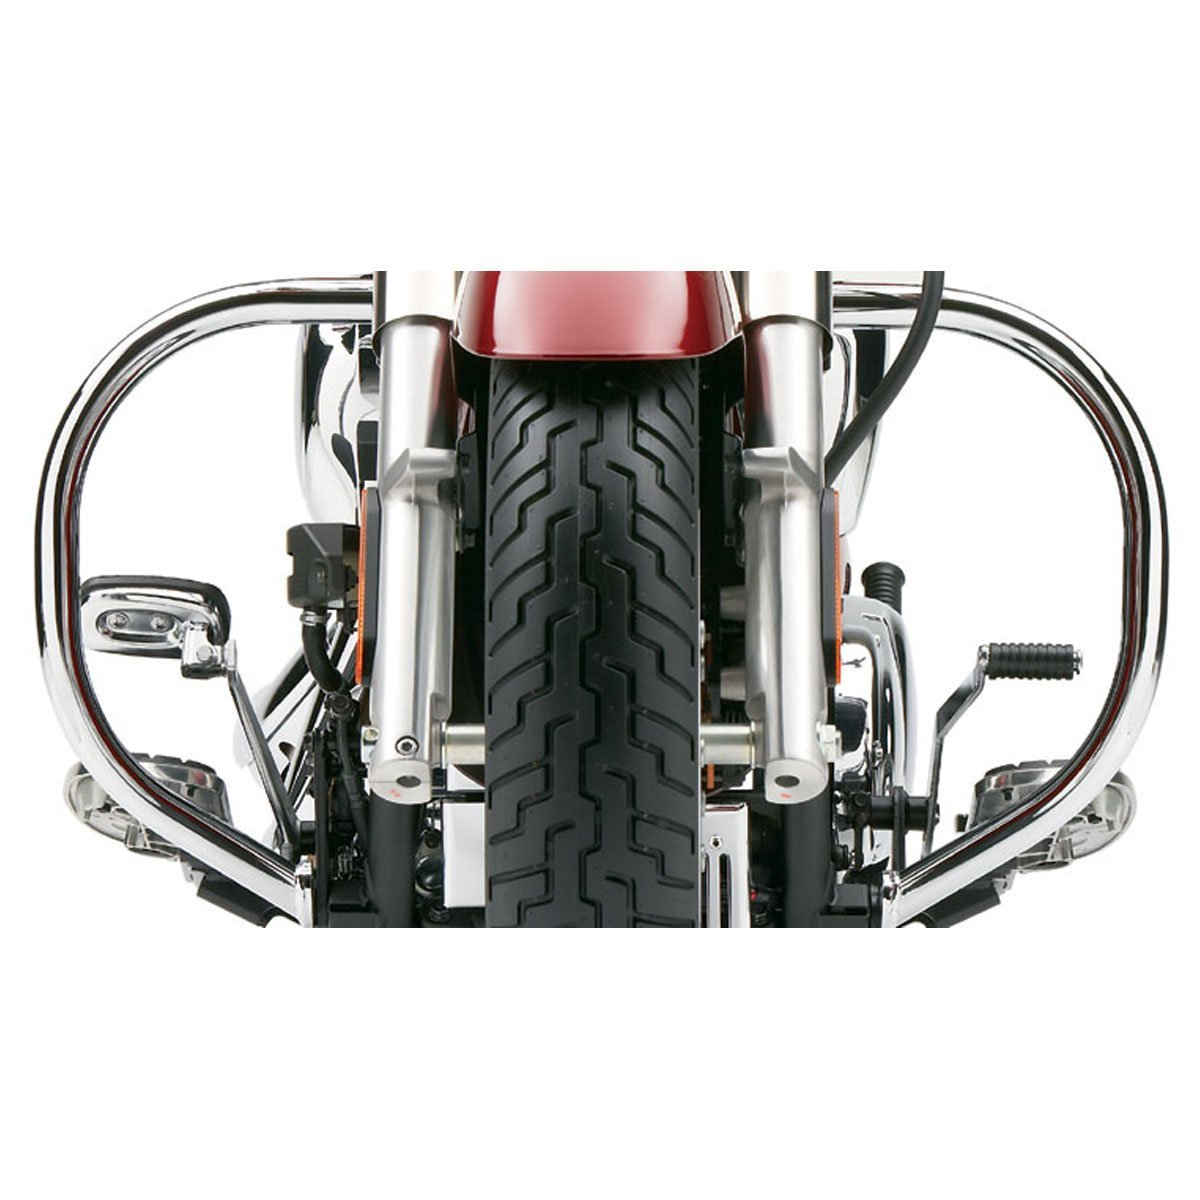 Get it delivered to your door - COBRA Freeway Bars for 2002-2008 Honda VTX1800N/R/S Models - 4550 (EGP)